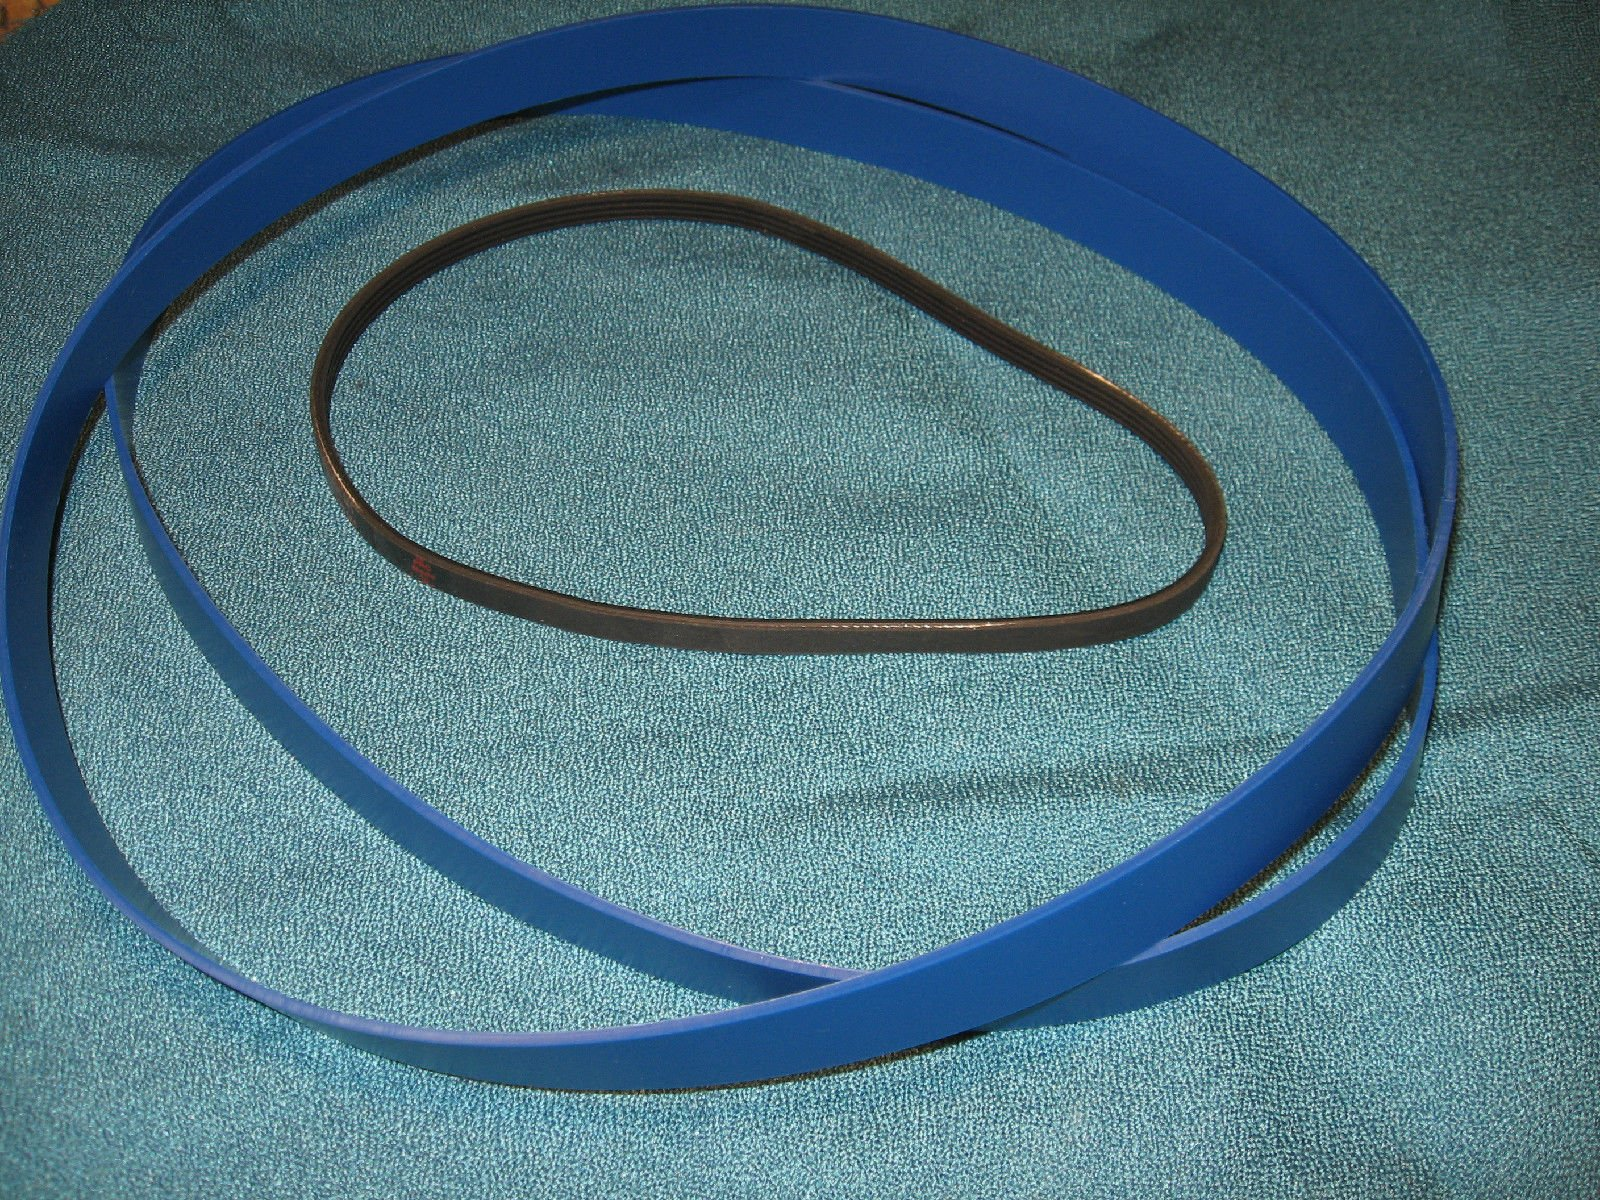 New Heavy Duty Band Saw Urethane Blue Max Tire Set AND DRIVE BELT FOR CAPITOL EBAS350 BAND SAW